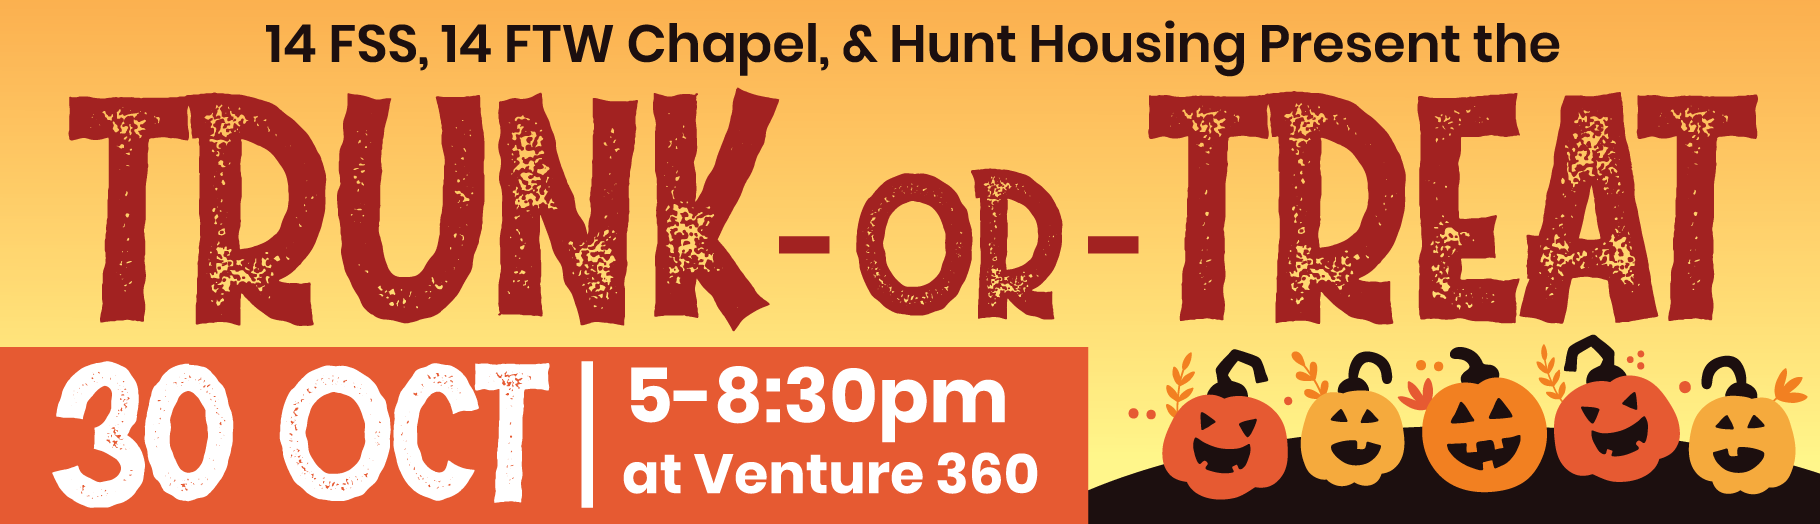 Trunk or Treat Oct 30 from 1700 to 2030 at Venture 360